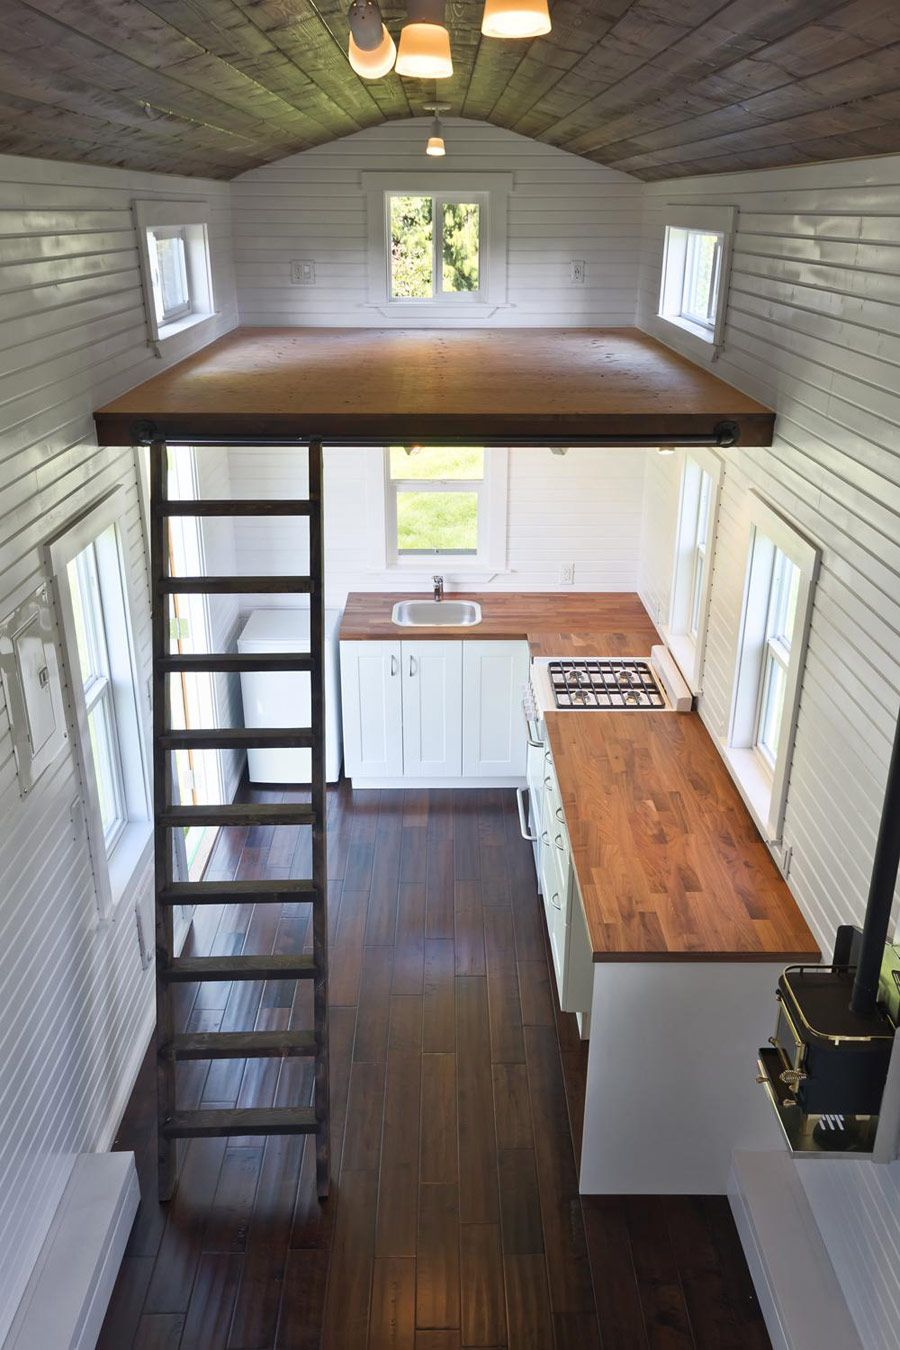 Tumbleweed Tinyhouses Tinyhome Tinyhouseplans A 224 Square Feet Tiny House On Wheels In Delta British Columbia Canada Built By Living Homes